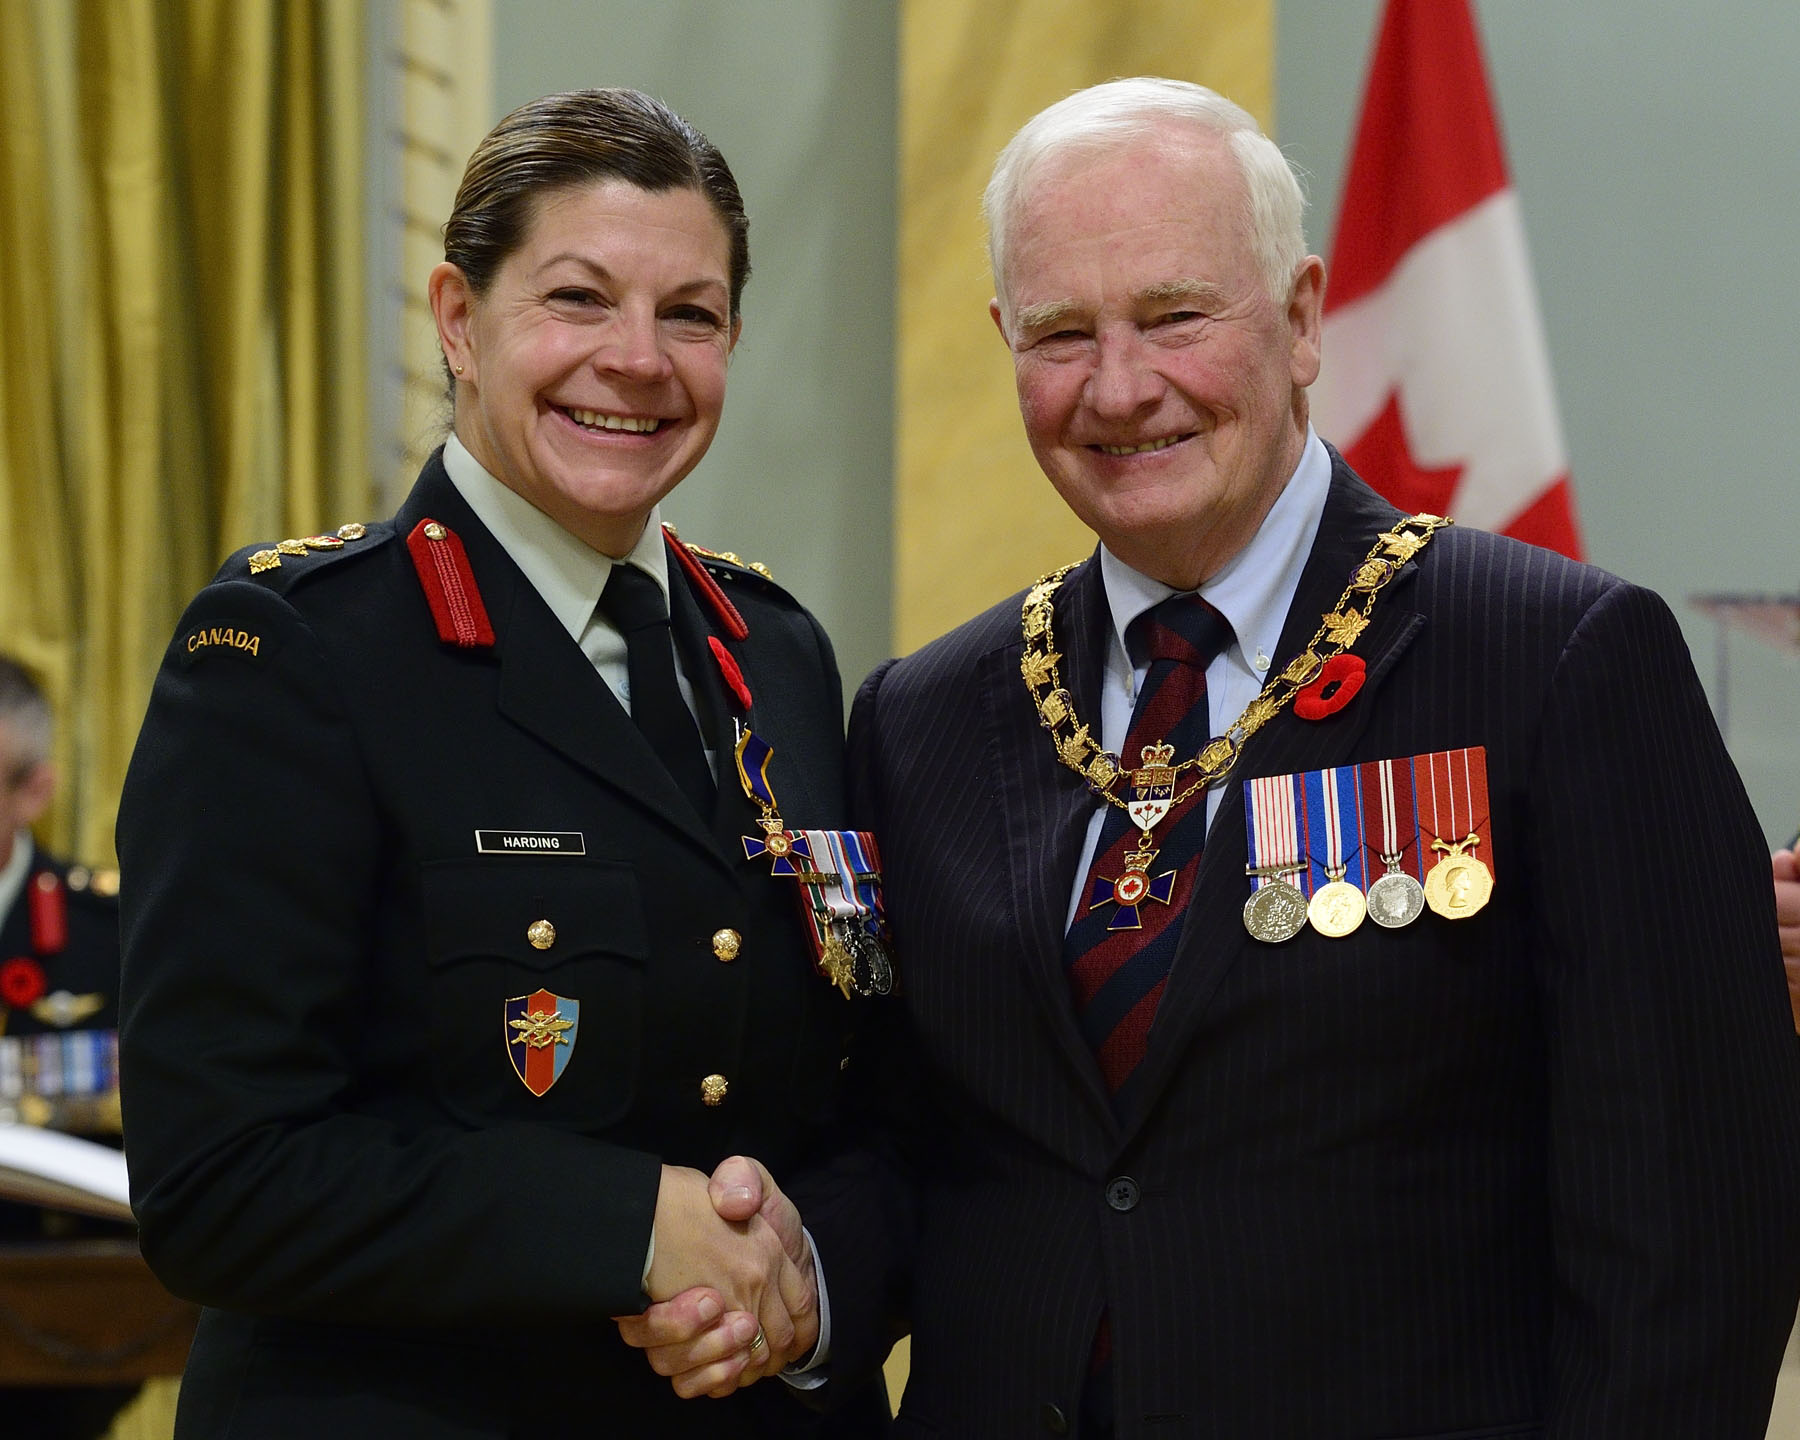 His Excellency presented the Order of Military Merit at the Officer level (O.M.M.) to Lieutenant-Colonel Carla Marie Harding, O.M.M., C.D., 2 Service Battalion, Petawawa, Ontario.